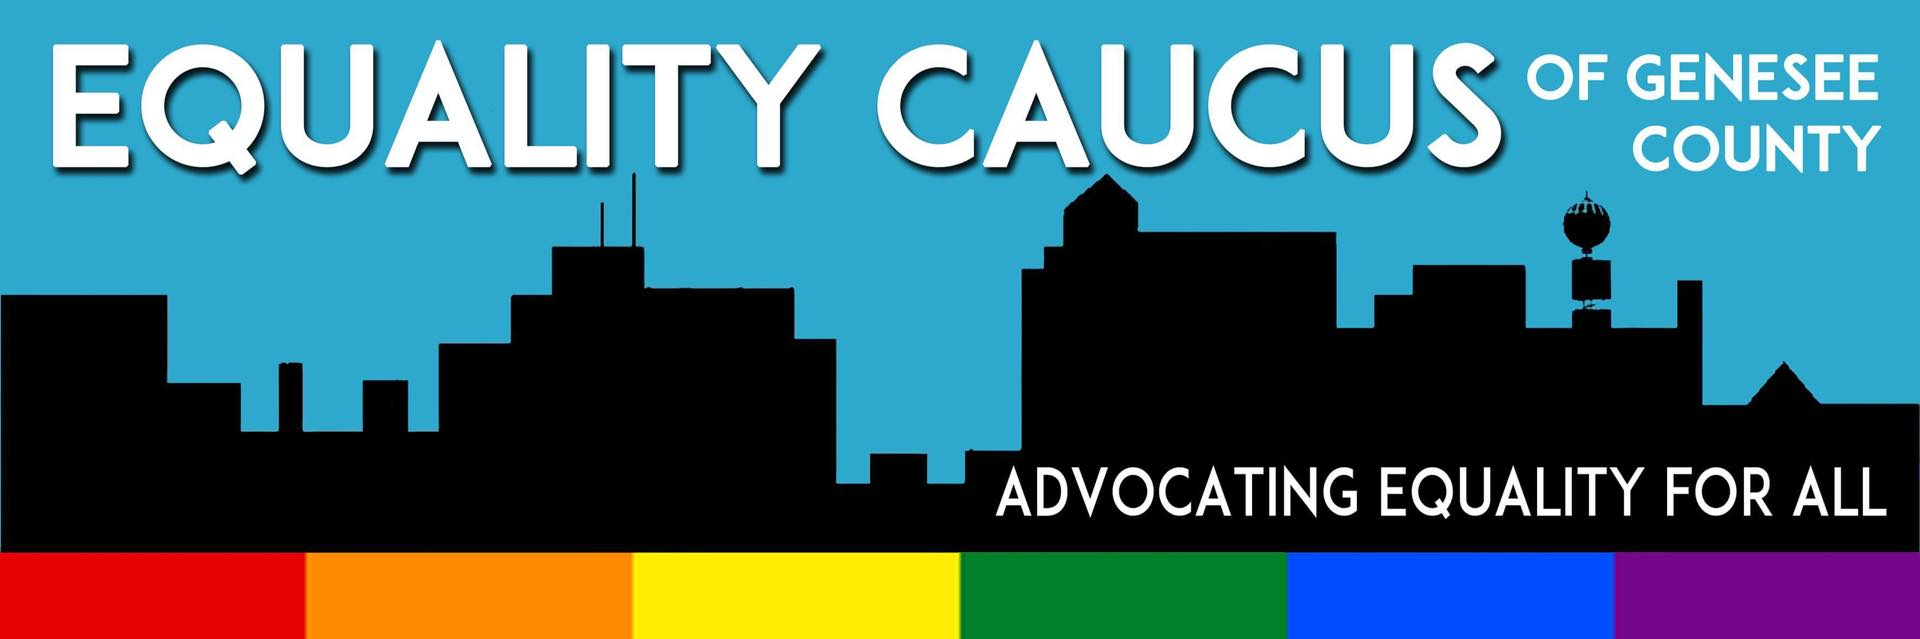 Equality Caucus of Genesee County